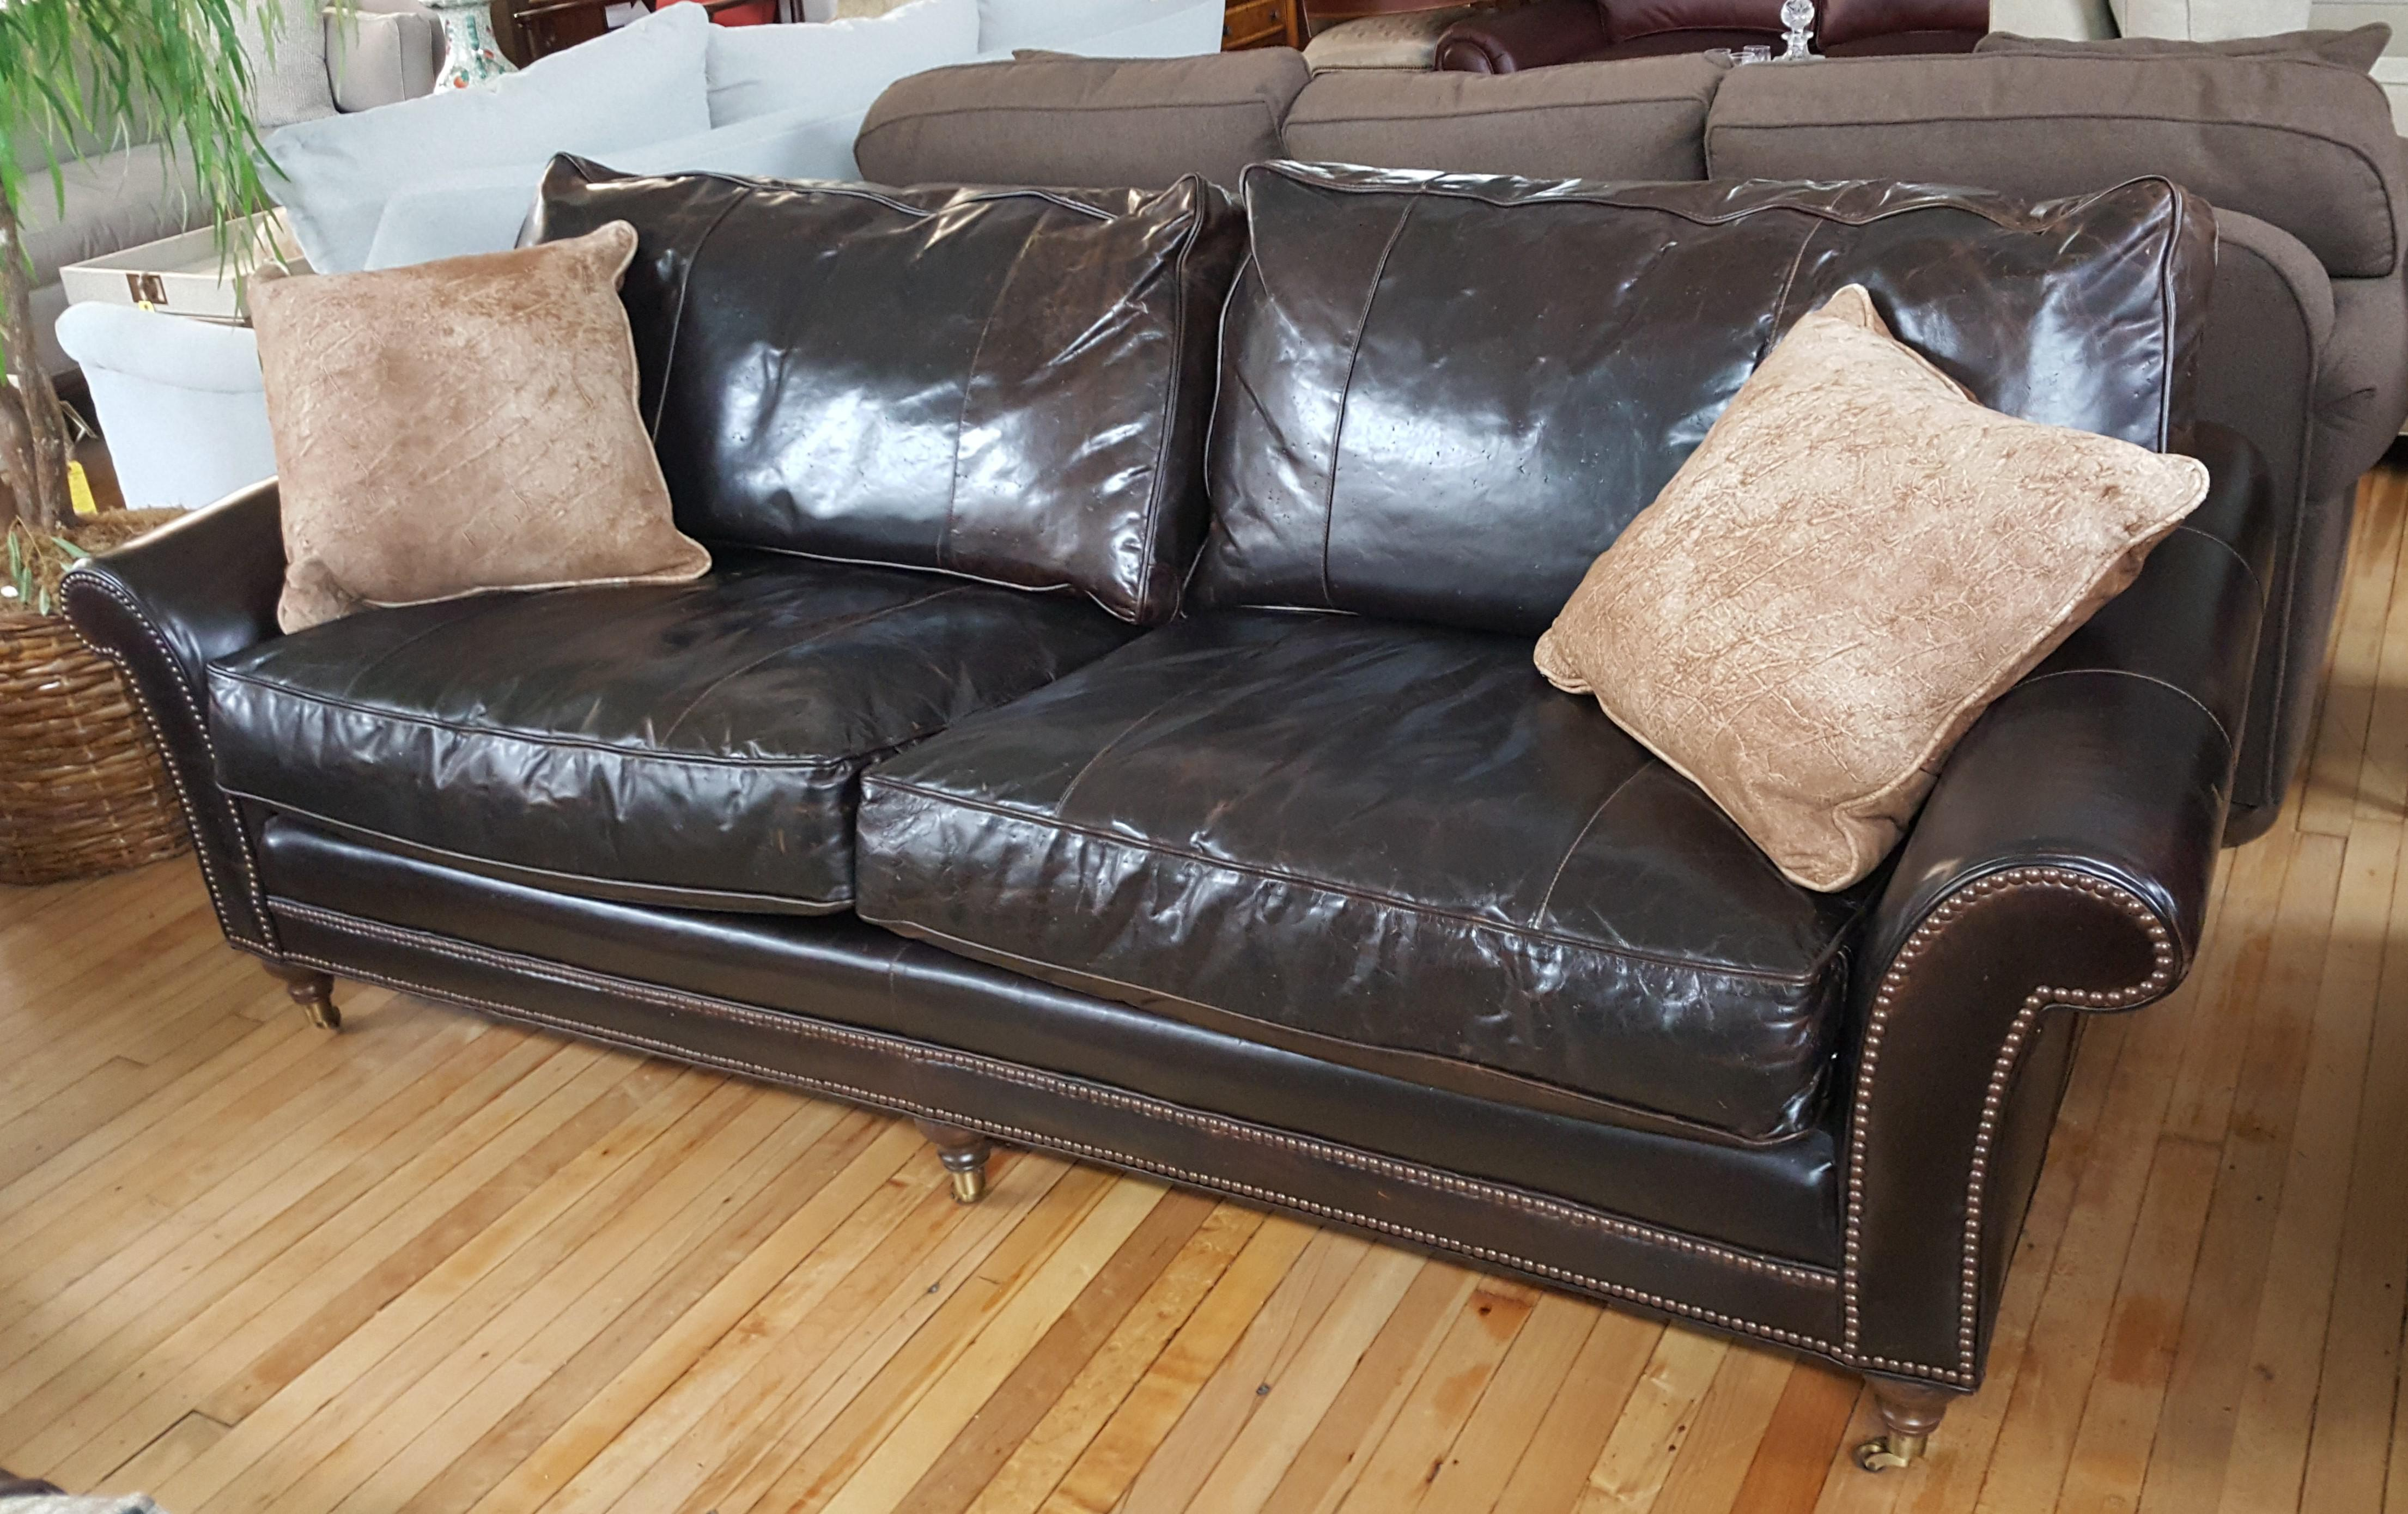 Standford Leather Sofa Was Originally About $13,000. Classic 18th Century  Style. 8 Way Hand